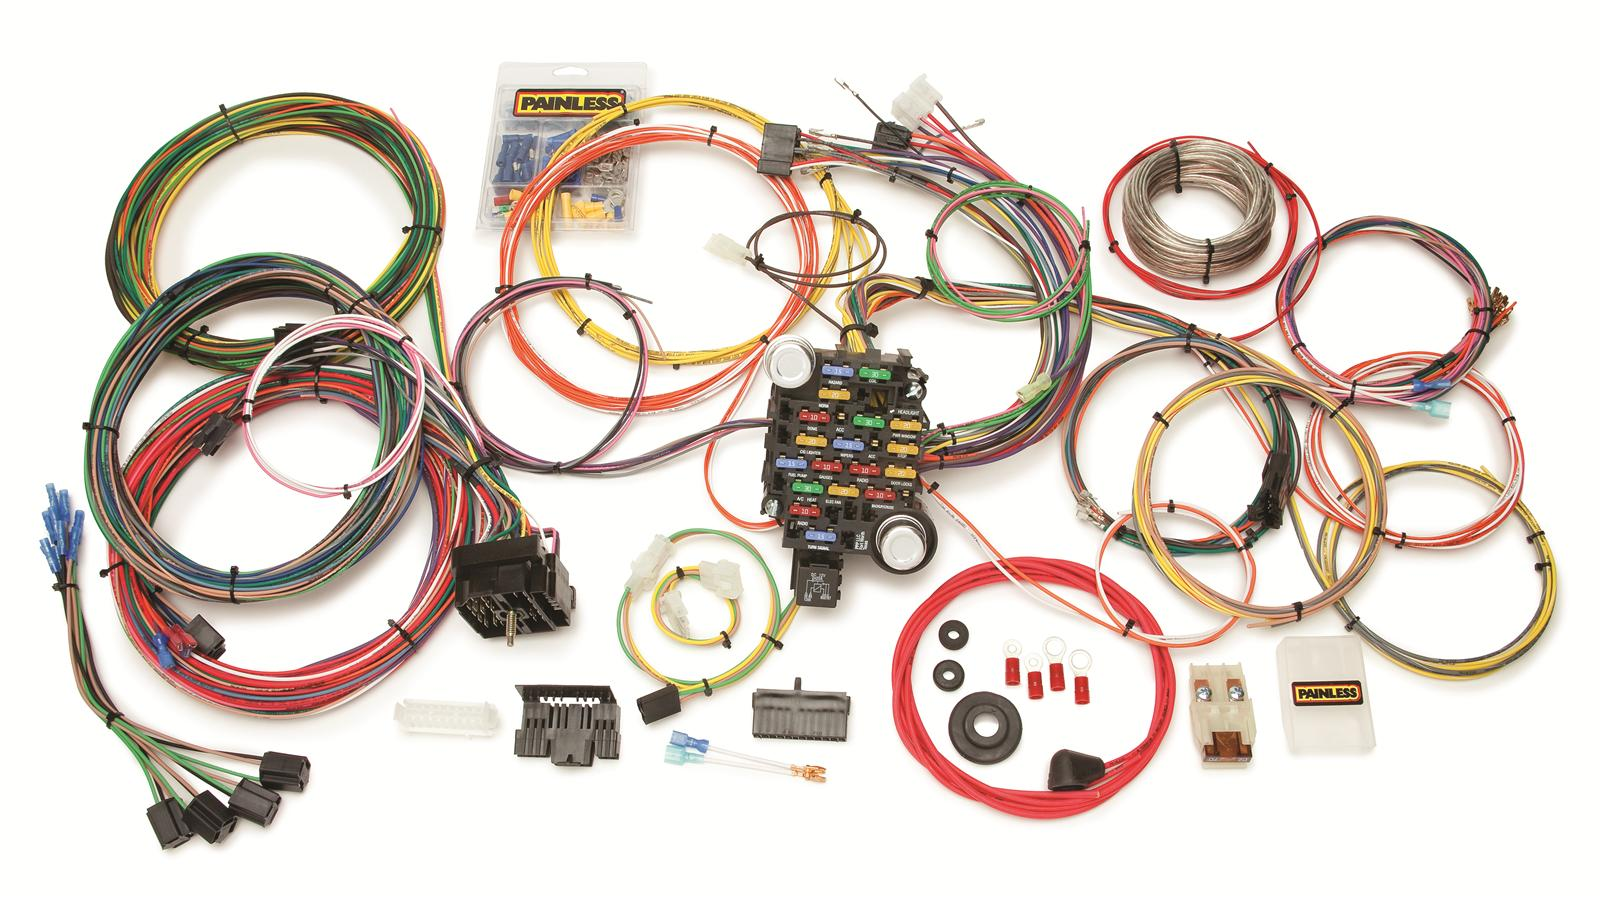 painless performance gmc/chevy truck harnesses 10205 ... 1986 chevy blazer wiring diagram free picture